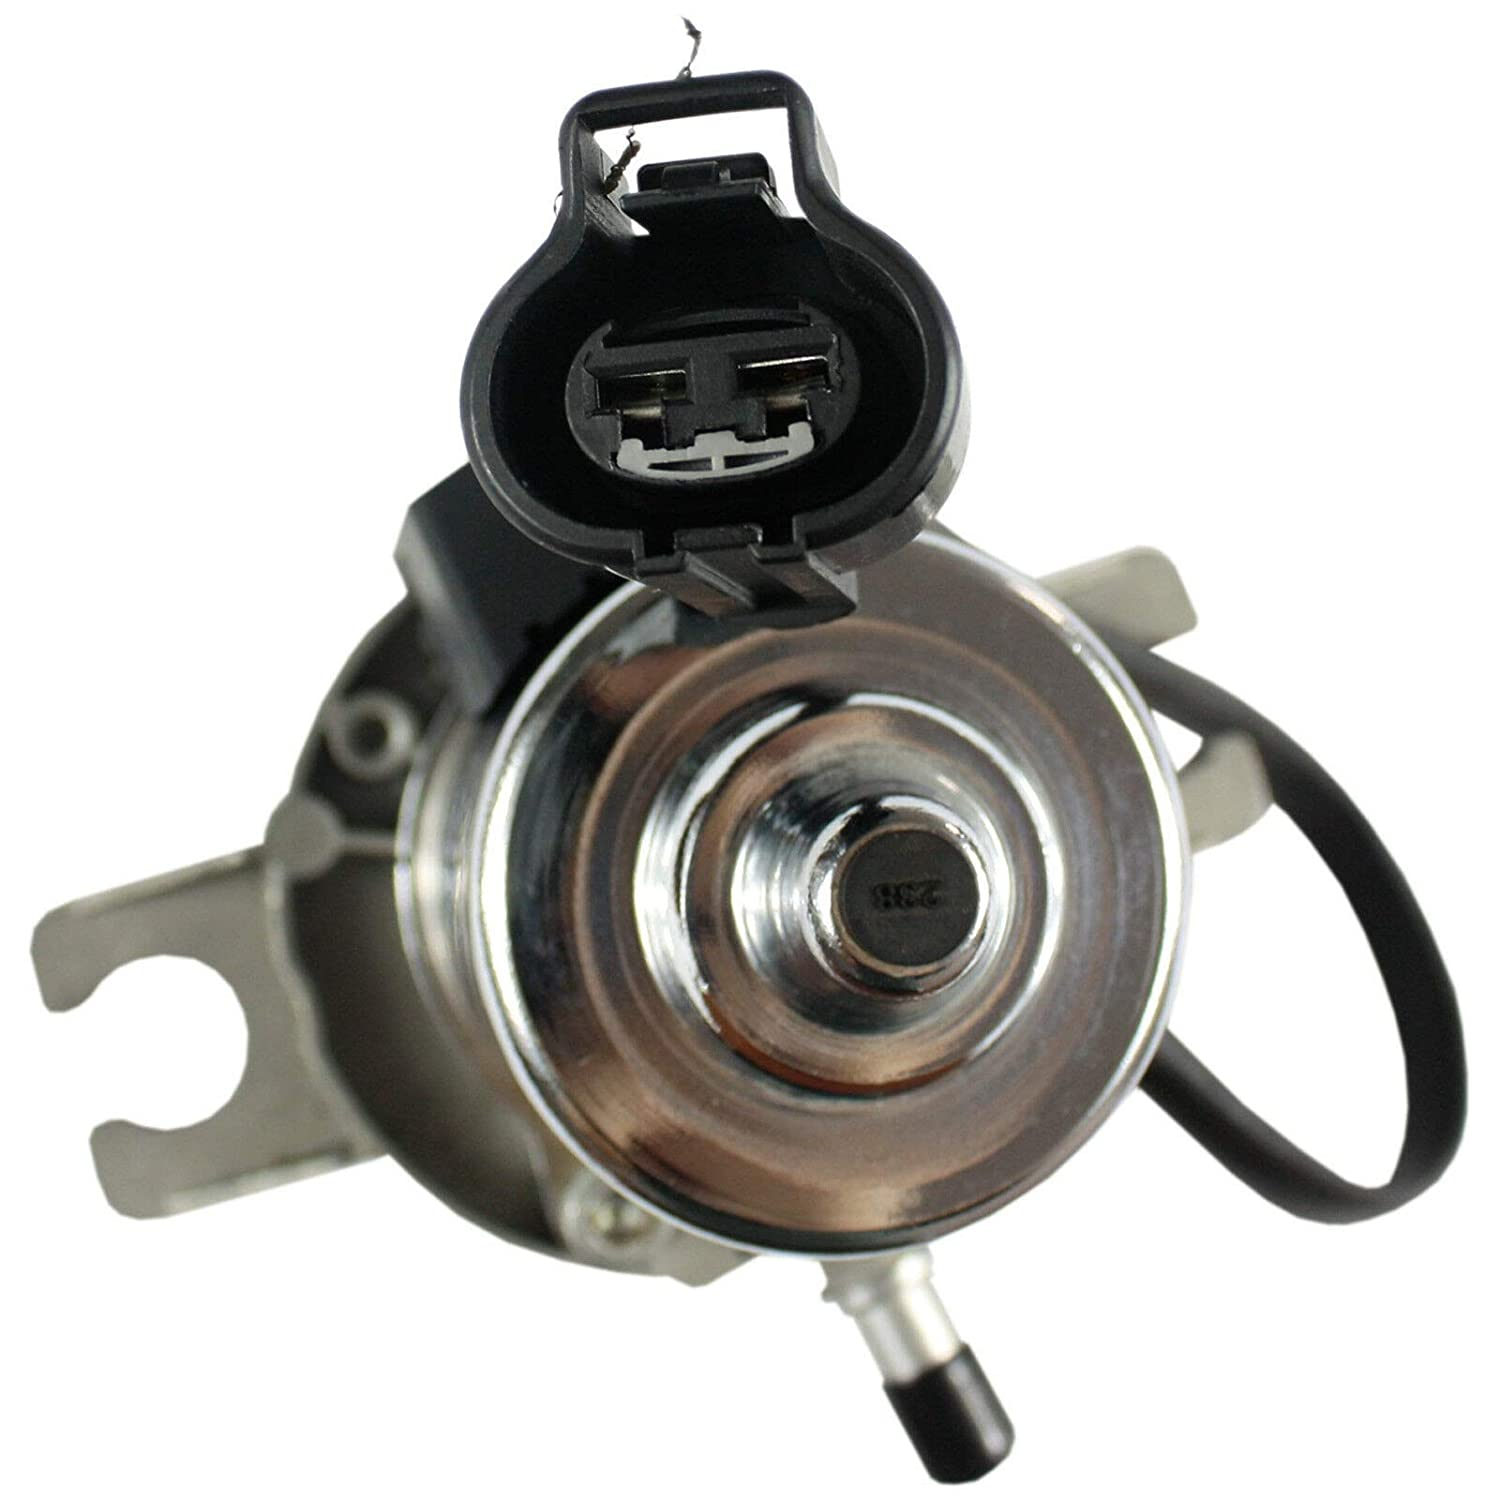 Brake Vacuum Pump For VOLVO C30 C70 S40 S60 S80 V40 V50 V70 XC70 90 31317530 445